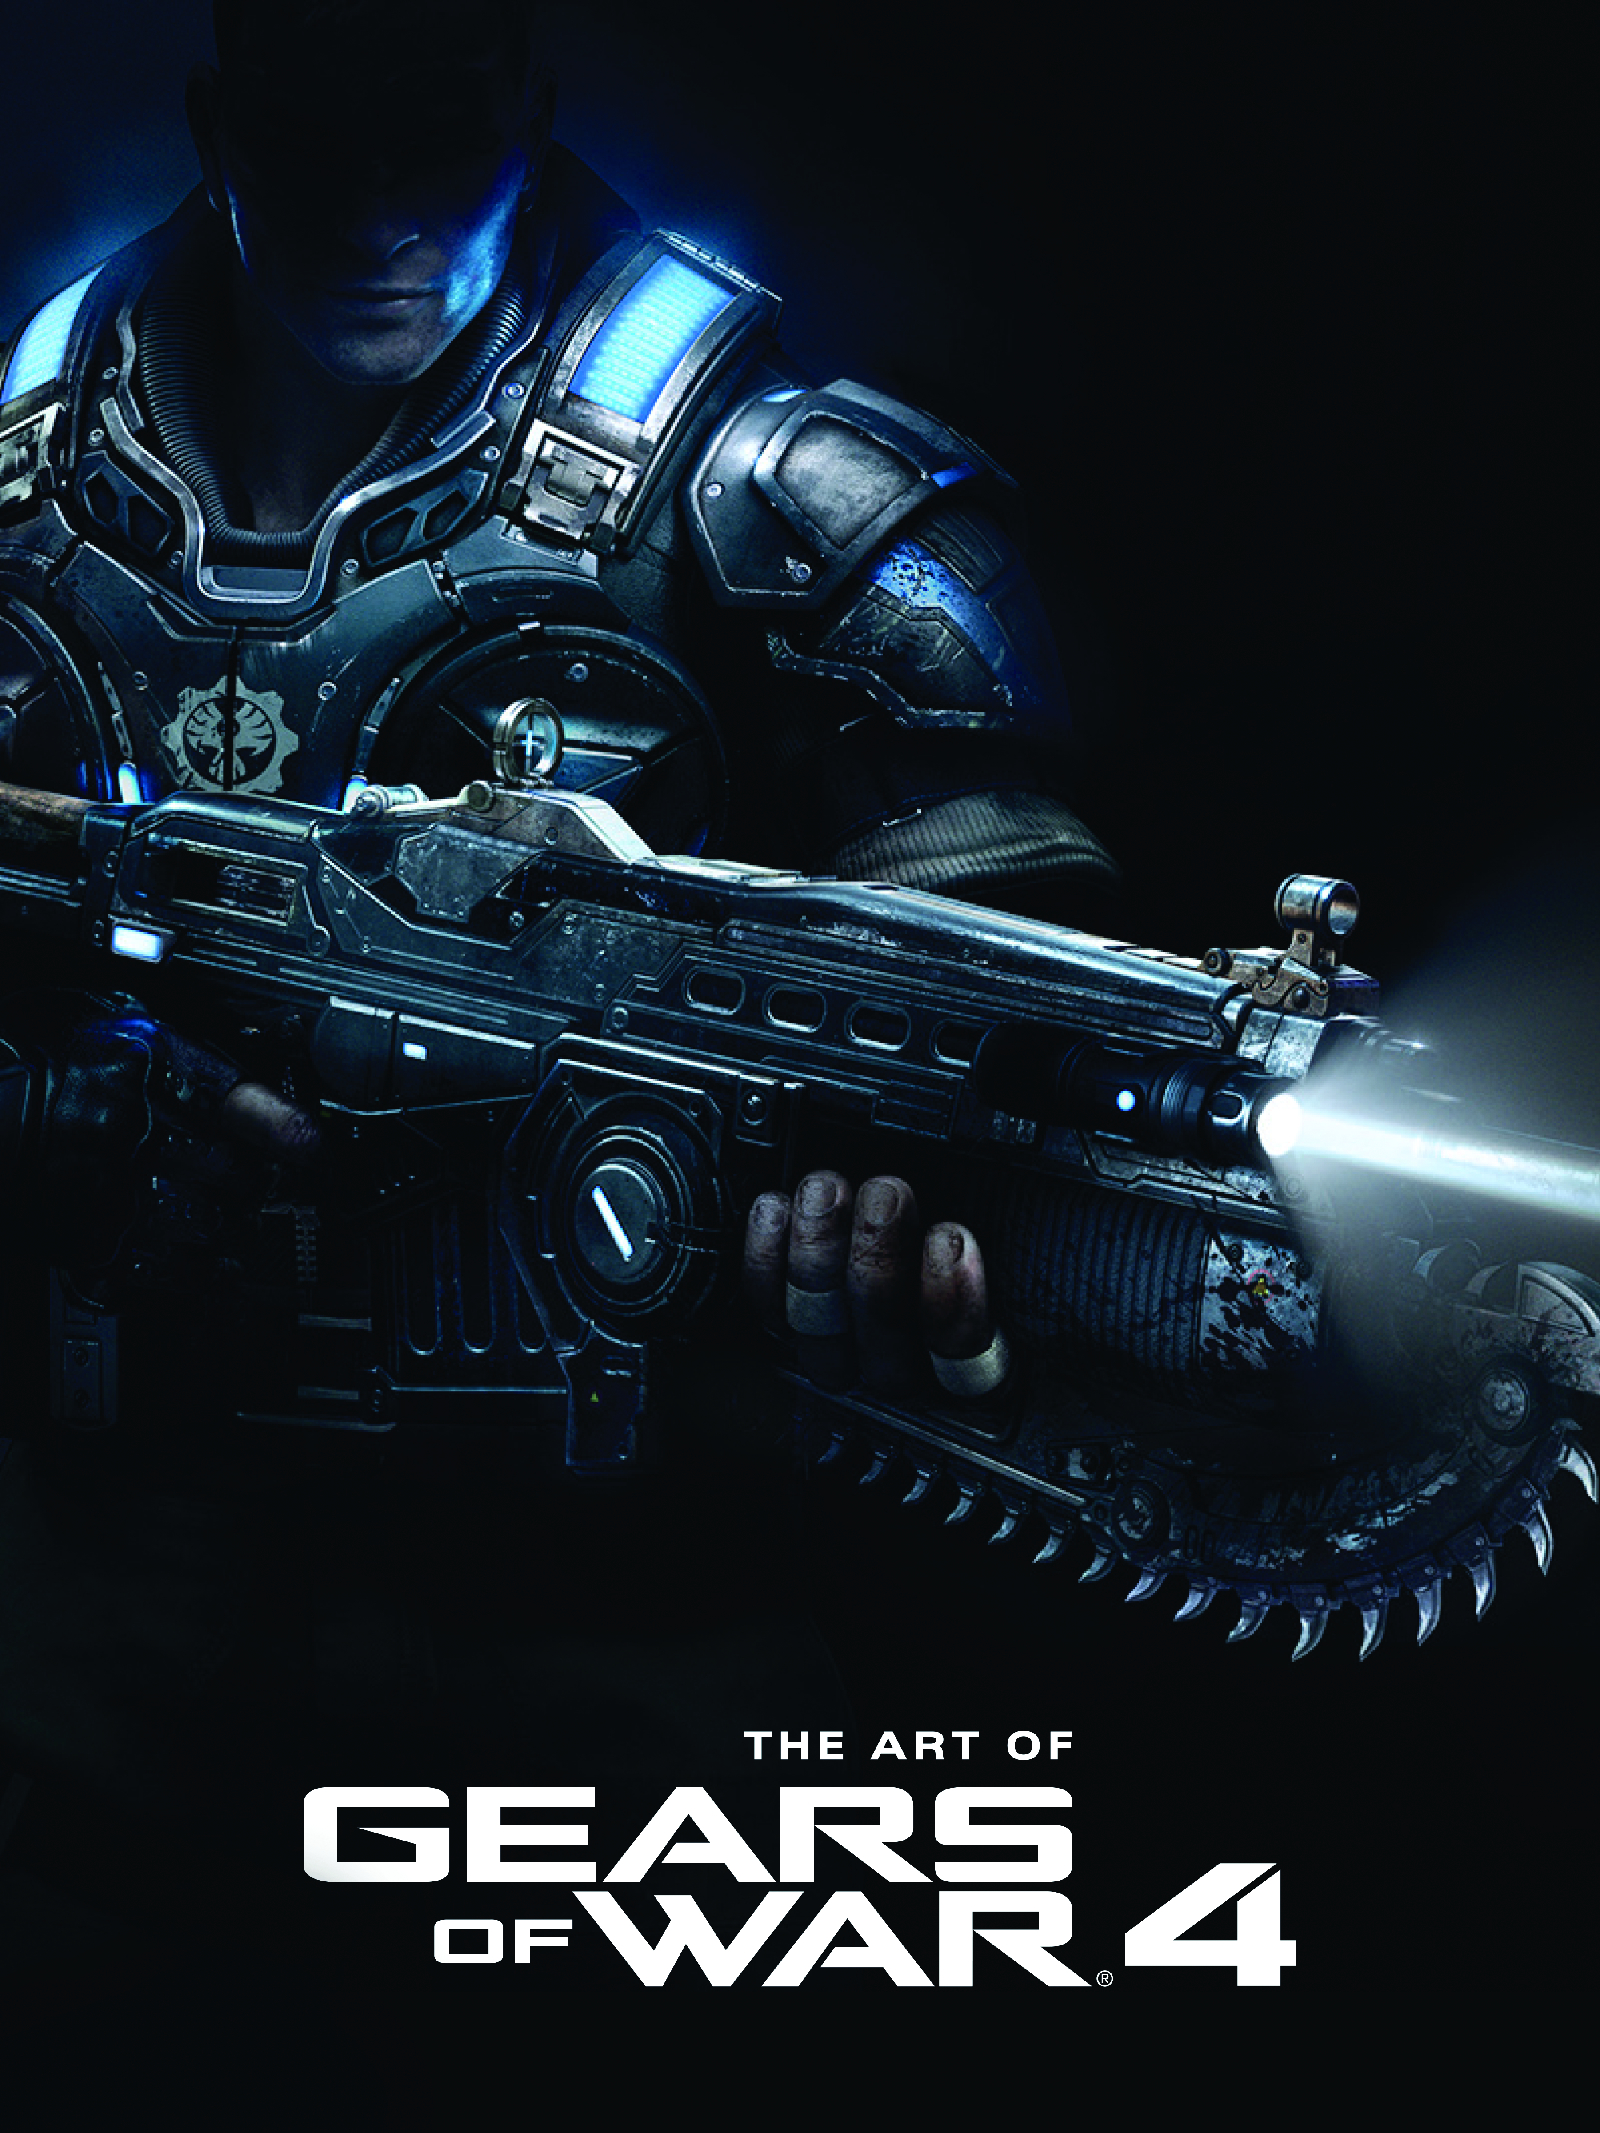 ART OF GEARS OF WAR 4 HC (AUG168422)